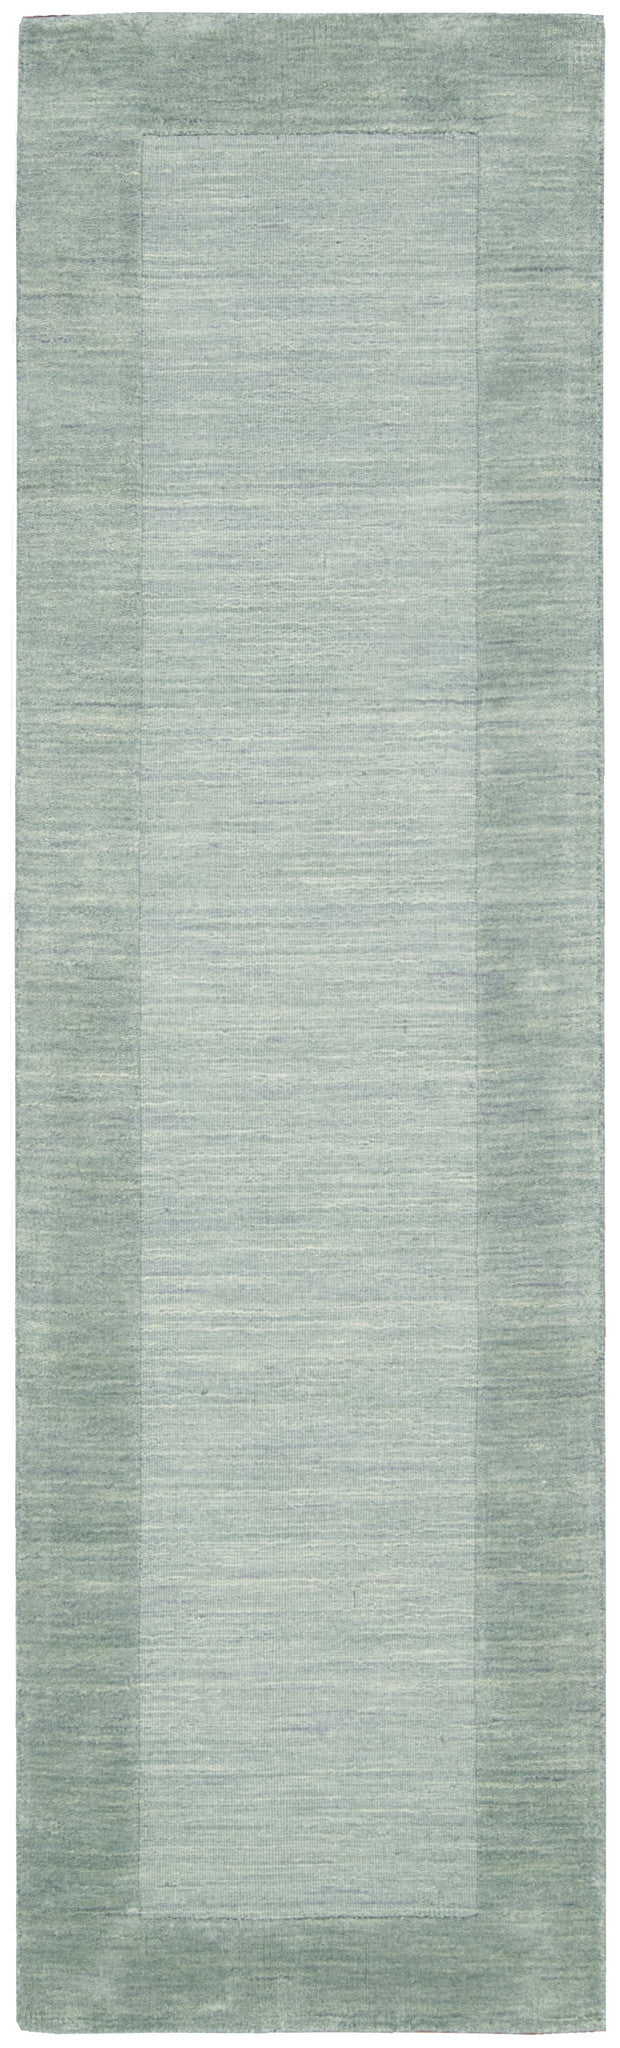 Barclay Butera Ripple Azure Blue Area Rug By Nourison RIP01 AZURE (Runner) | BOGO USA